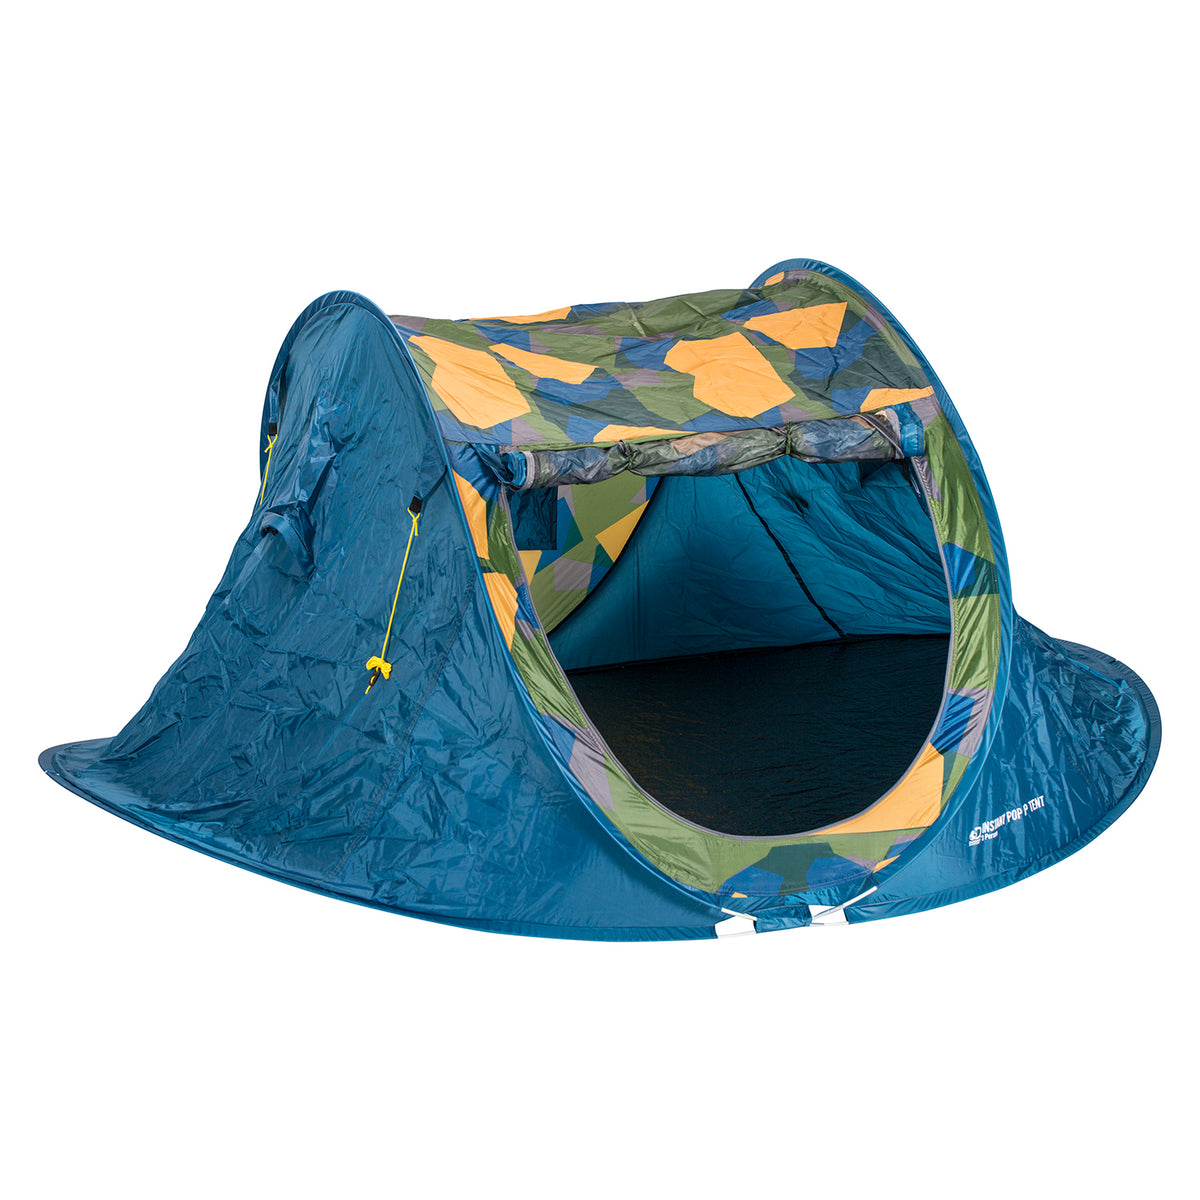 Discovery Adventures Three Person Pop Up Tent